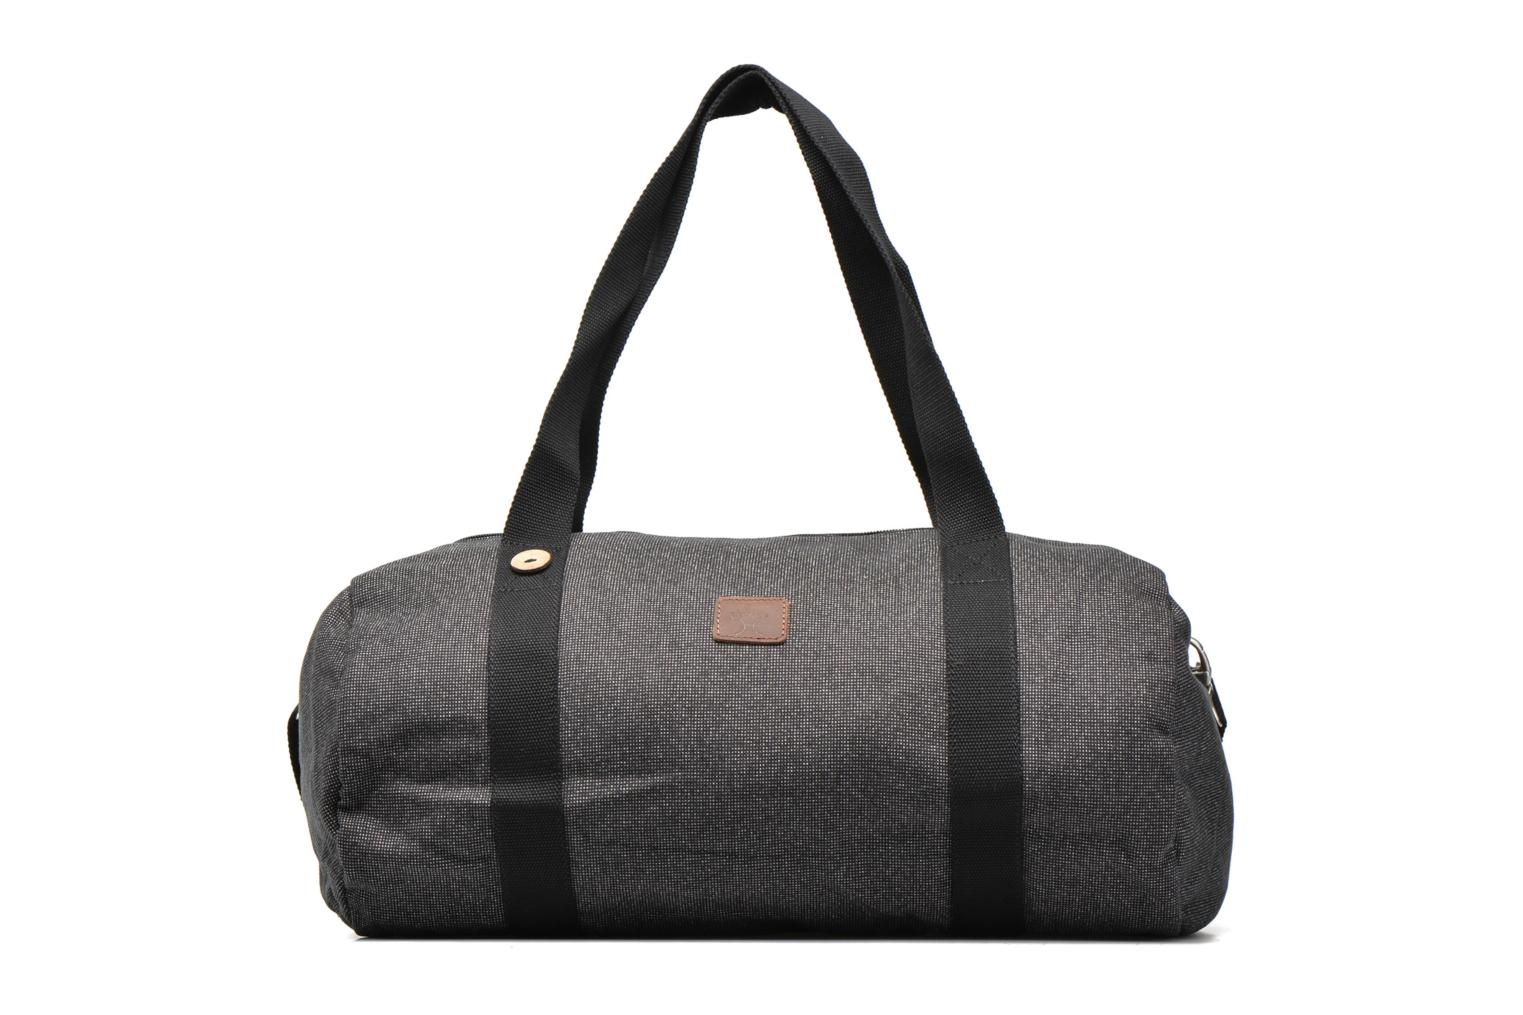 Duffle Coton Black and White